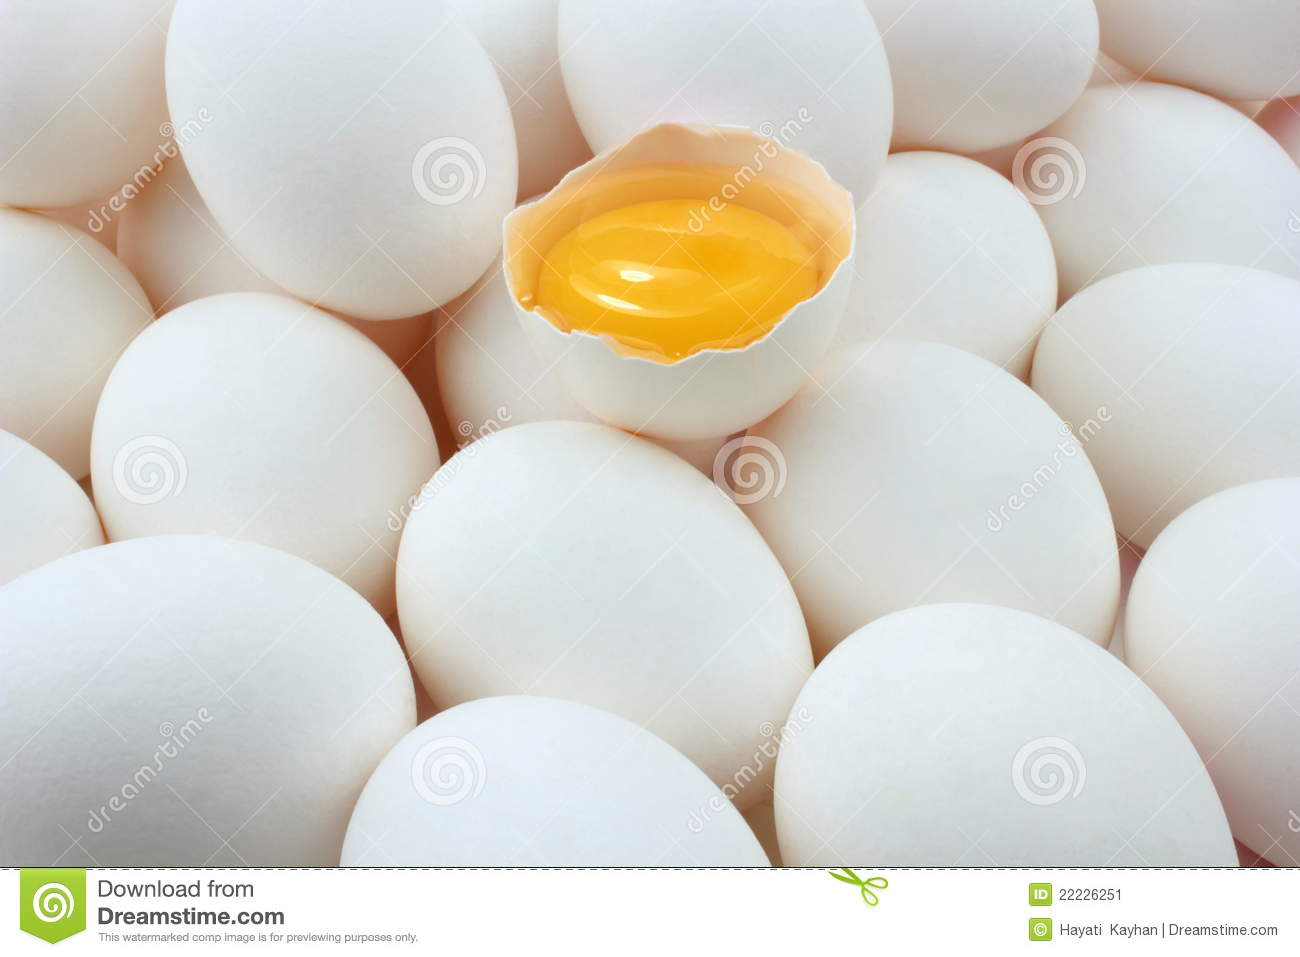 Eggs and egg yolk